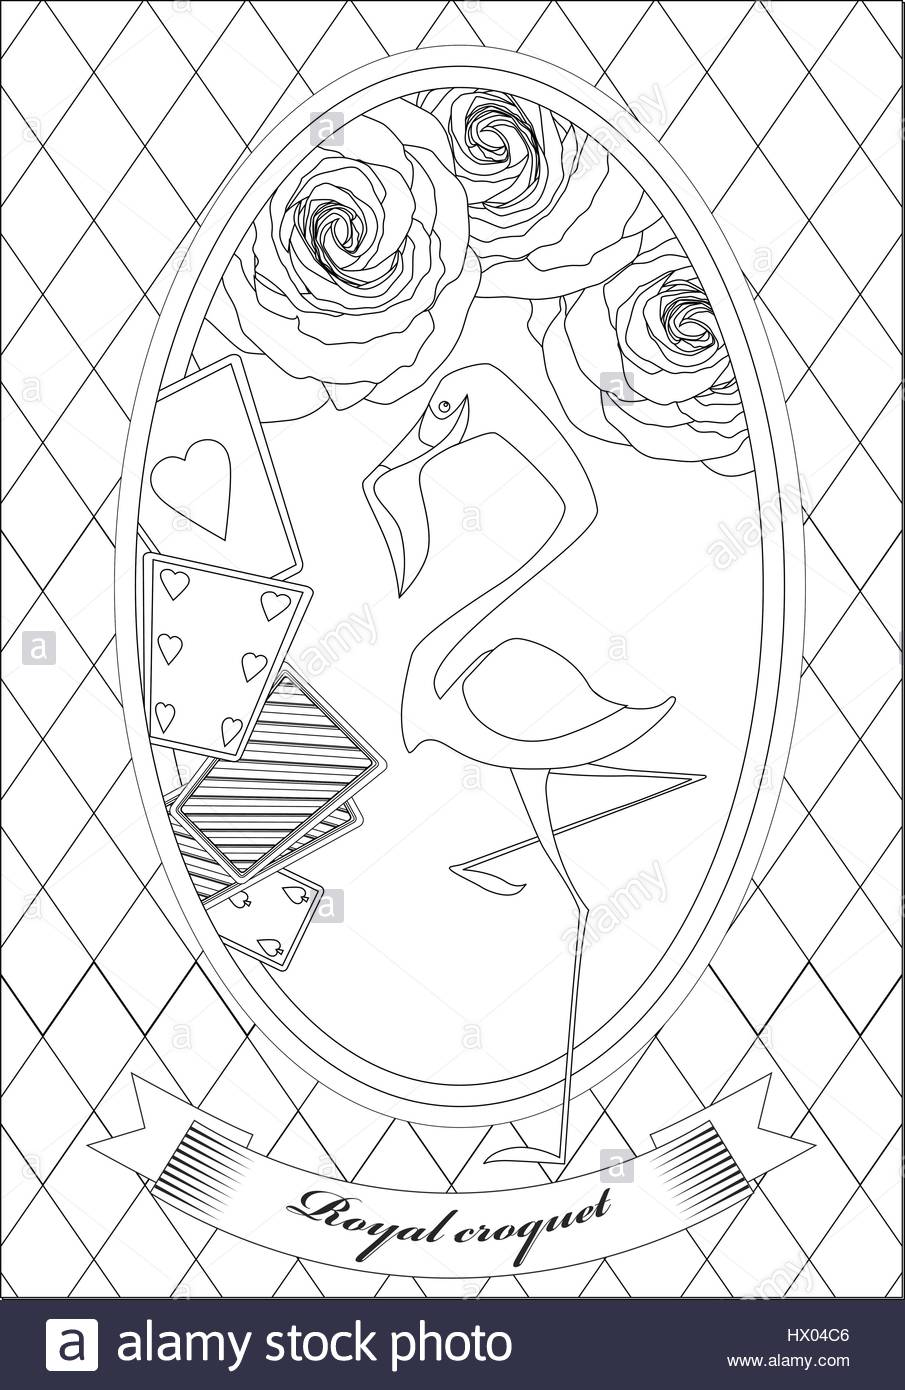 Coloring Page Alice In Wonderland Royal Croquet Hatter Dormouse